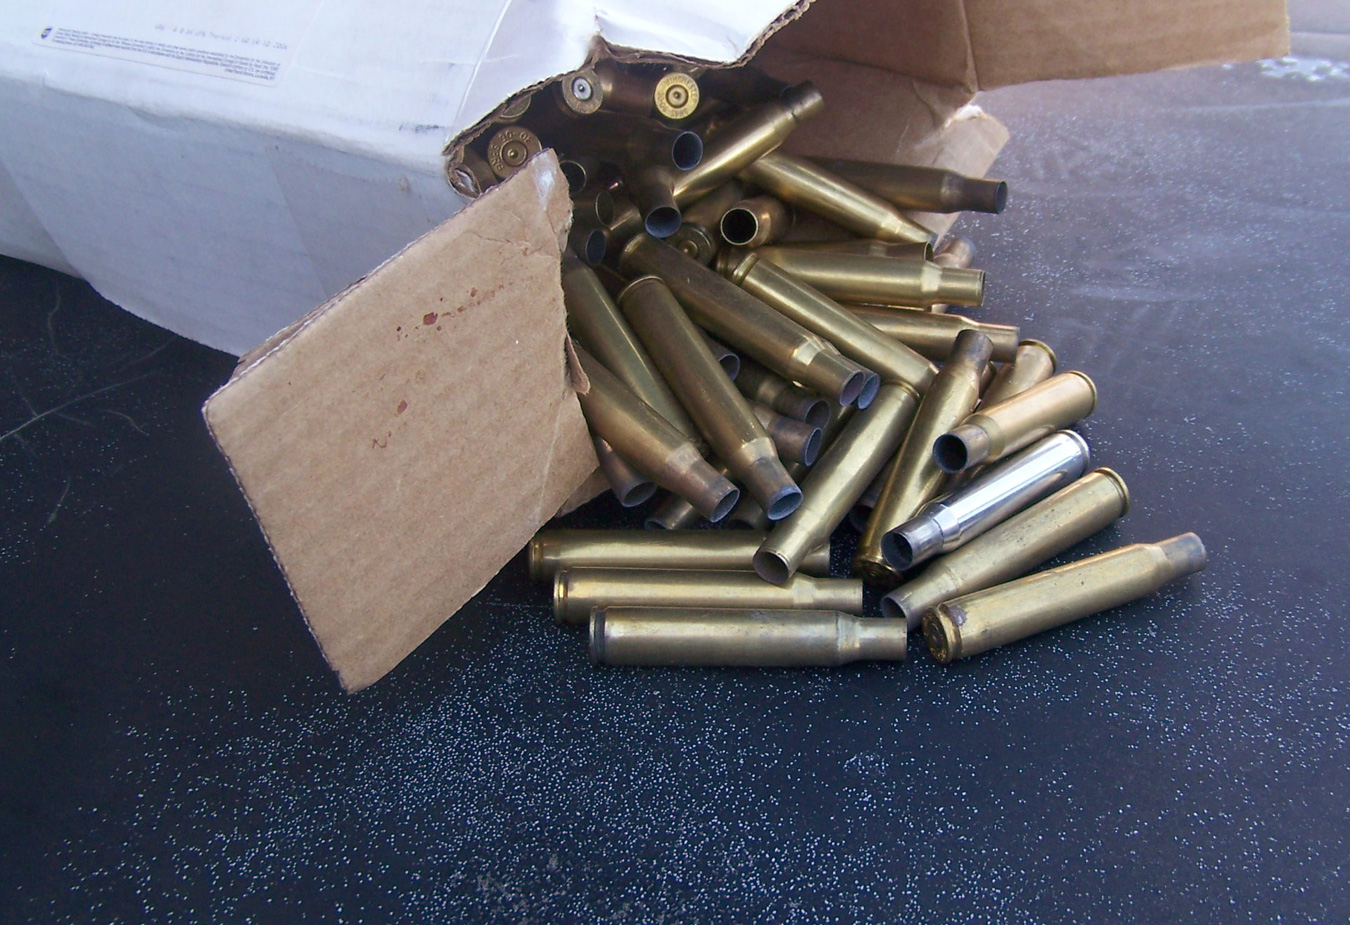 Brass cartridge cases for reloading